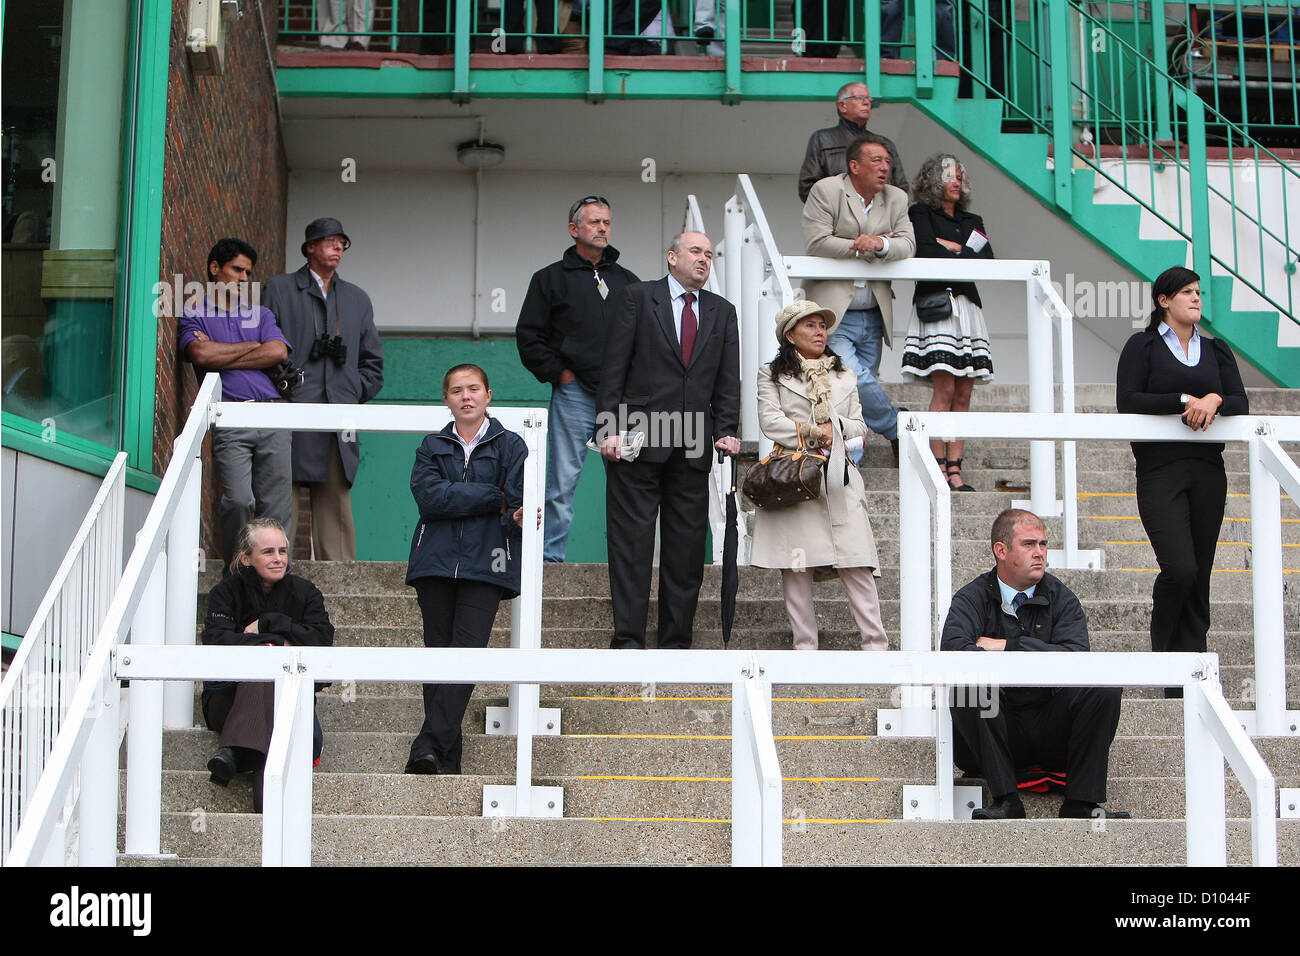 A typical poor crowd watch midweek racing in Britain - Stock Image